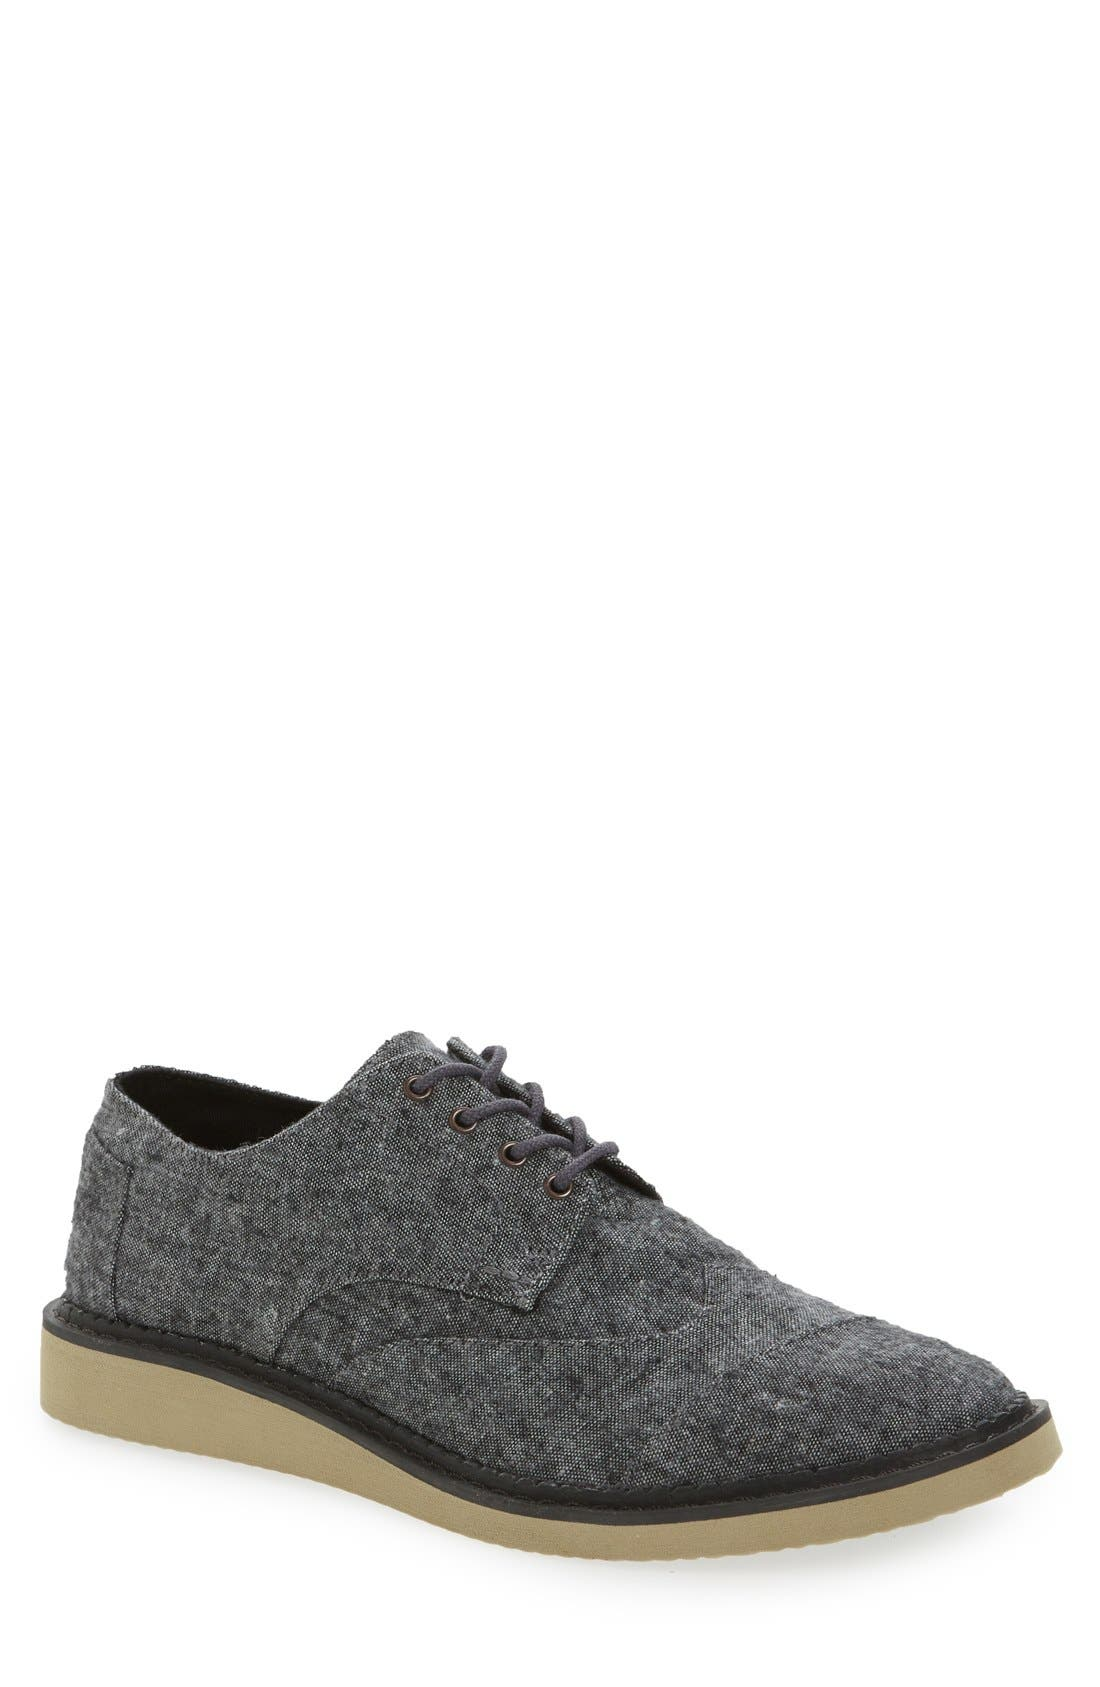 'Classic Brogue' Cotton Twill Derby,                             Main thumbnail 6, color,